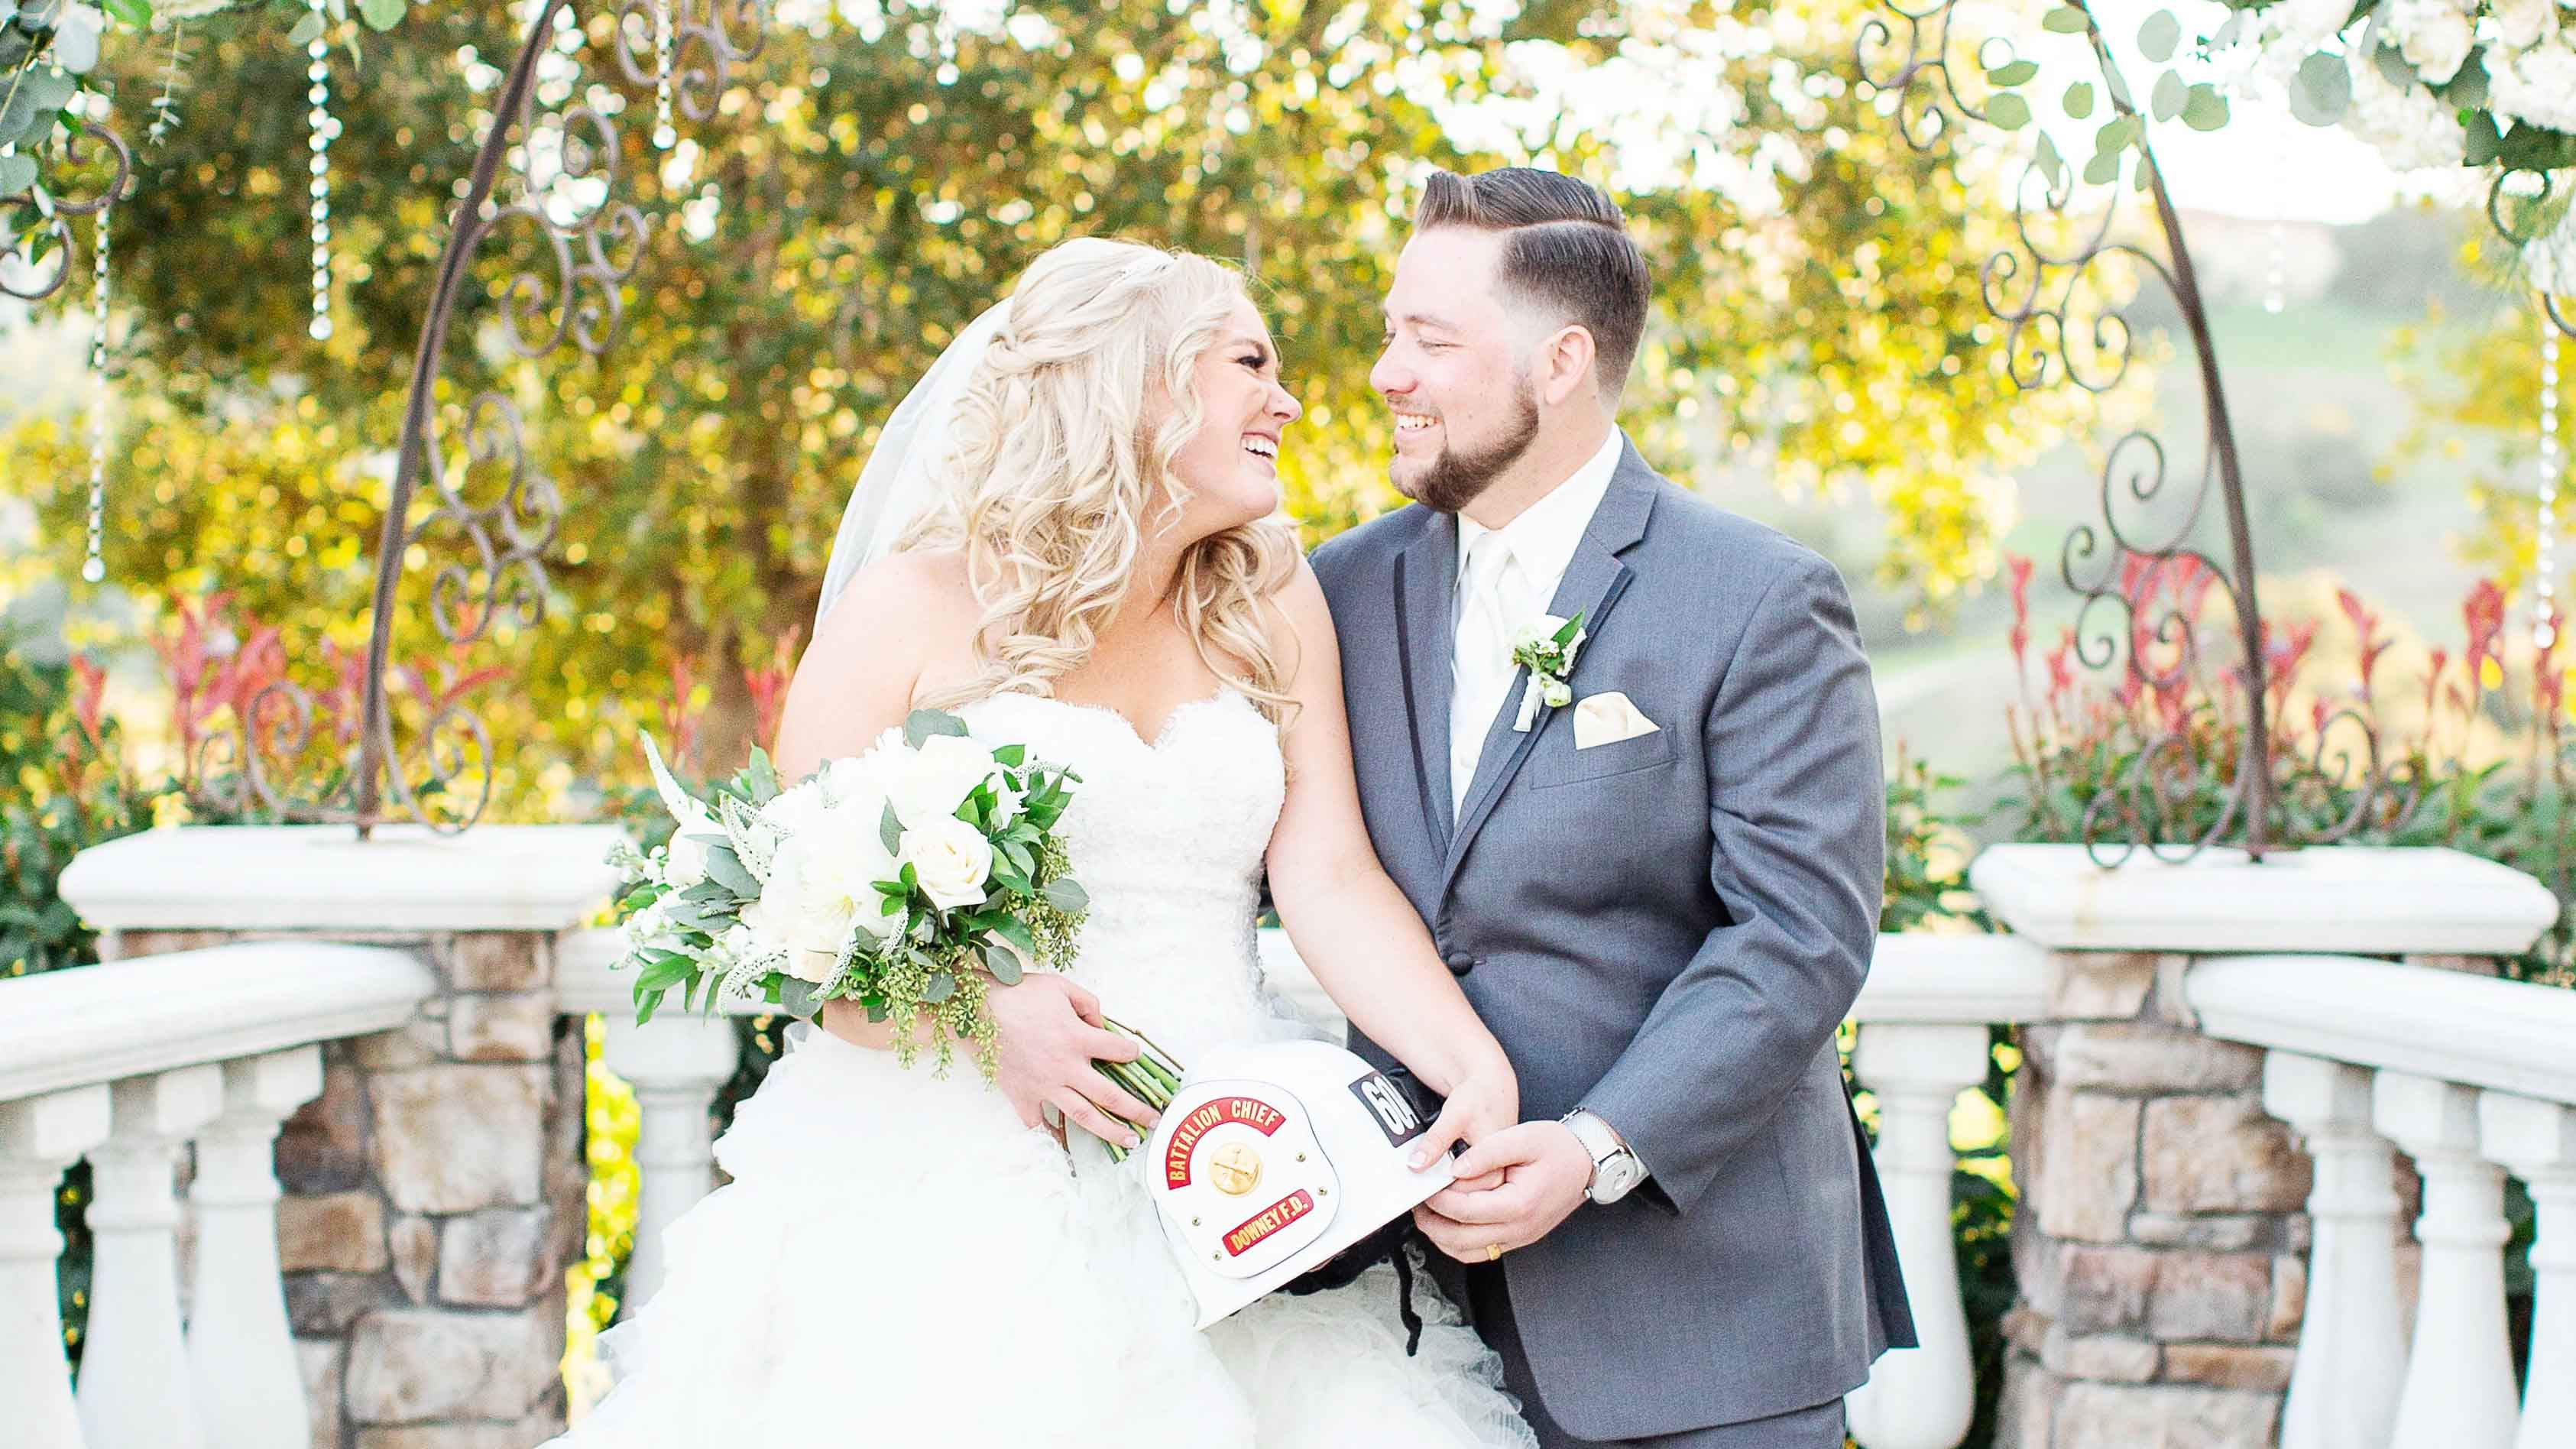 Real Wedding: McKenzie + Joe at Vellano Estate, CA